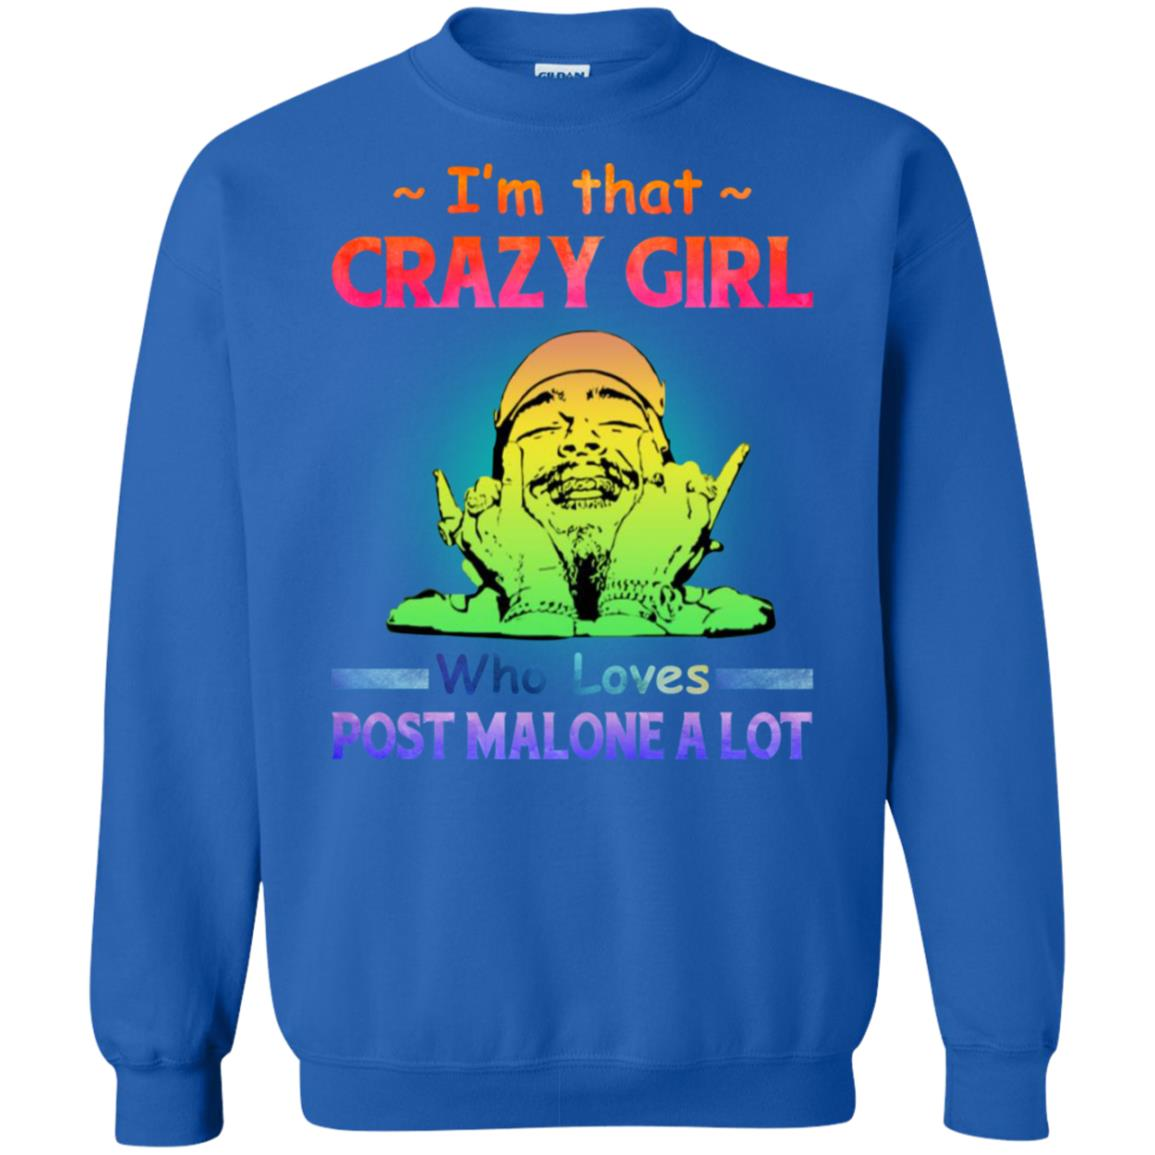 a1a637451 I'm that crazy girl who loves Post Malone a lot t-shirt, hoodie ...